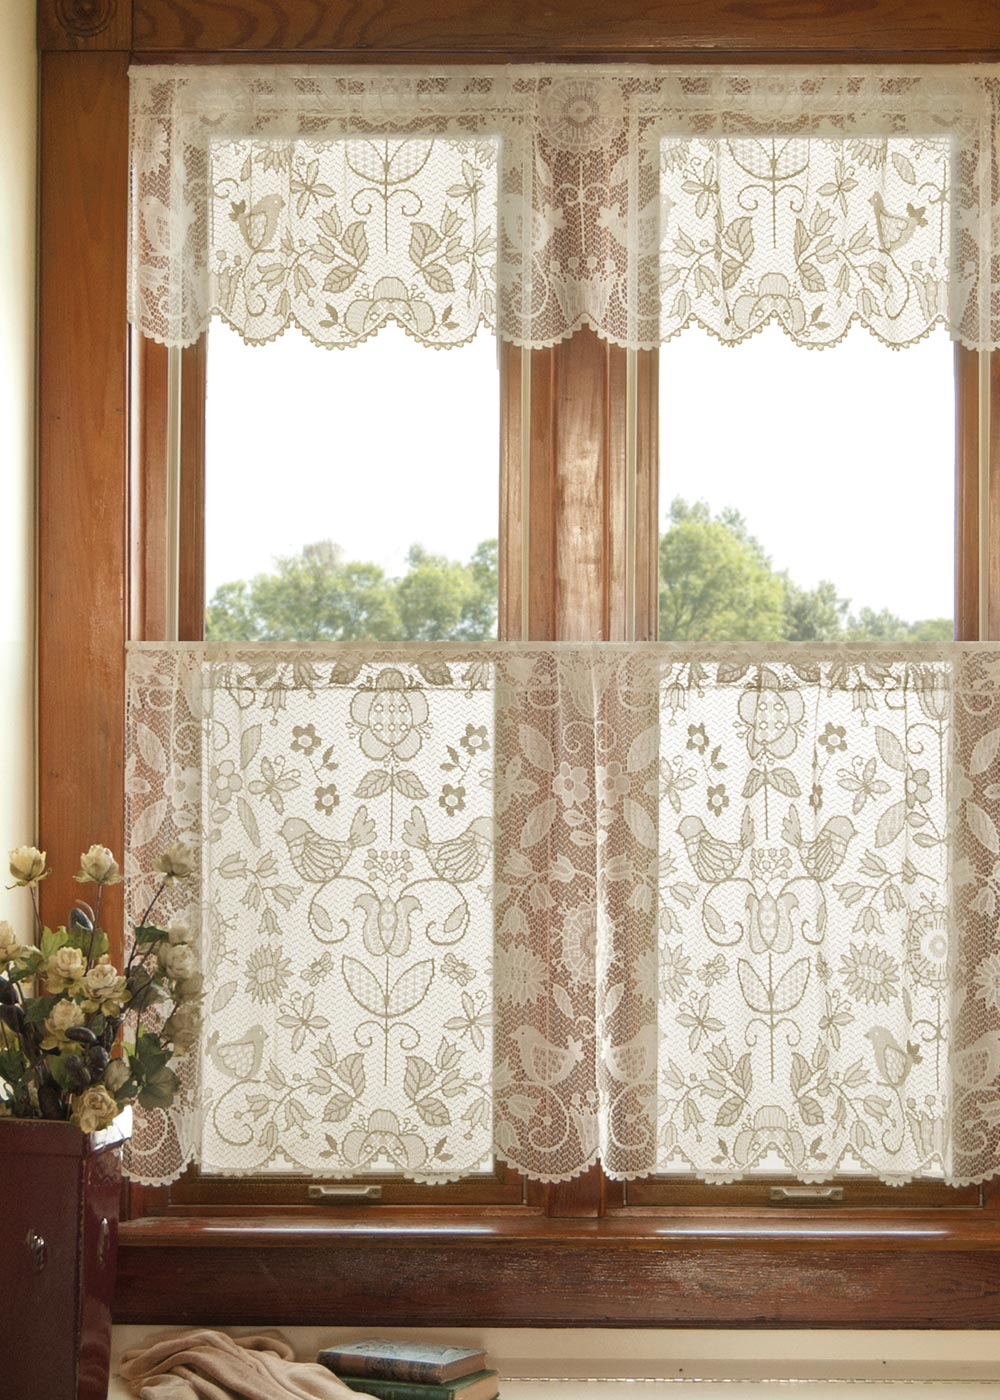 Rhapsody Valance Heritage Lace